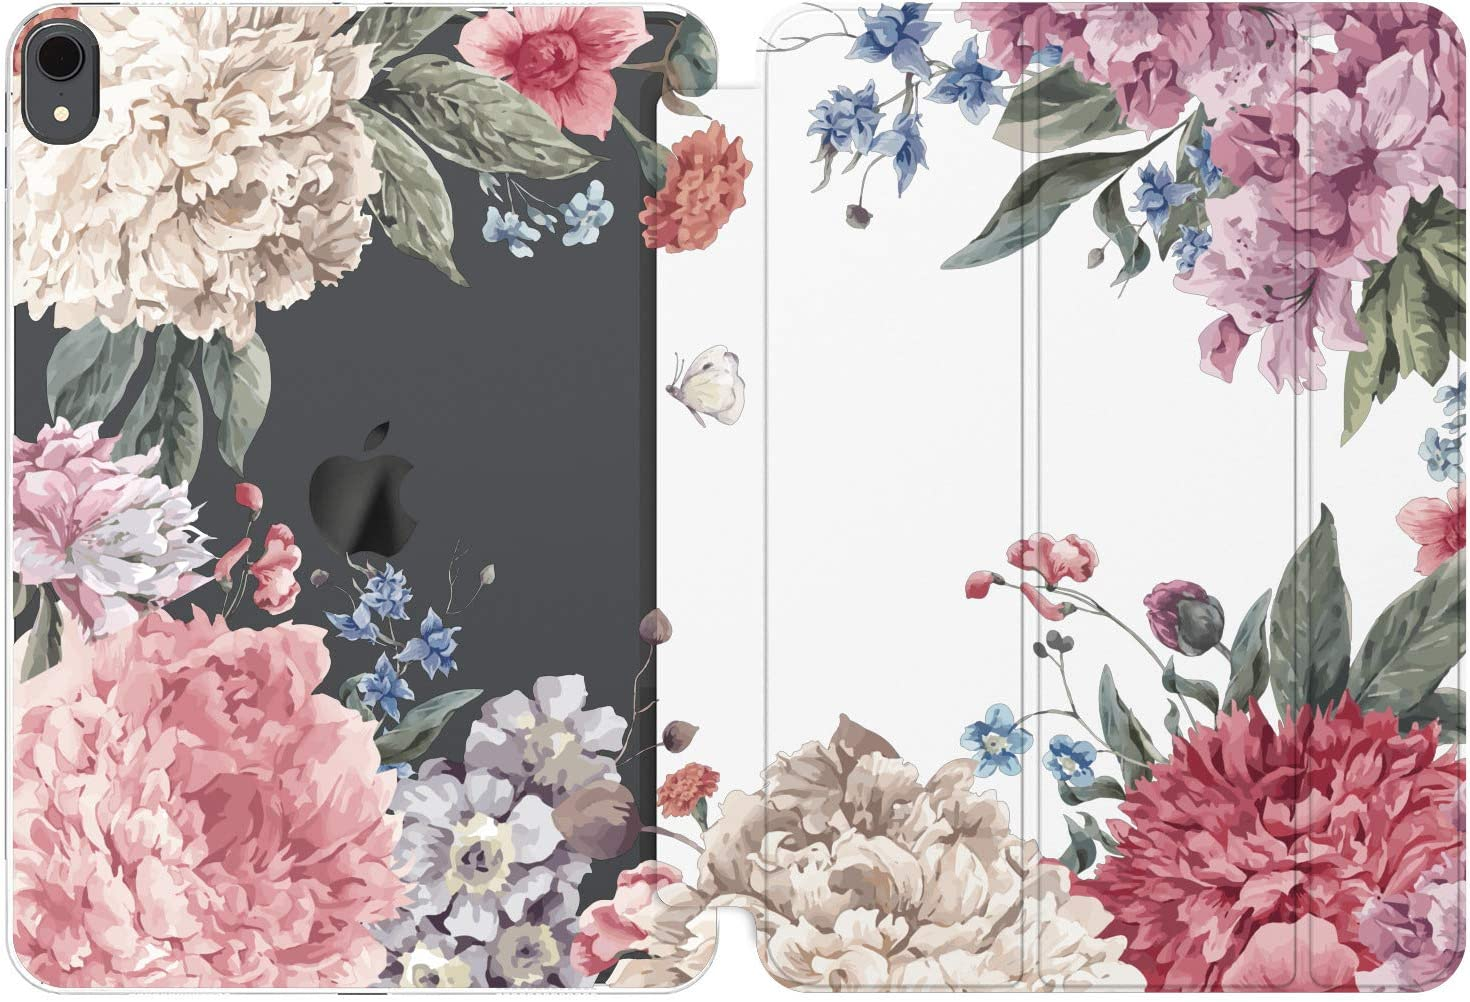 Cavka Case for Apple iPad 10.2 8th Gen 12.9 Pro 11 10.5 9.7 Air 3 Mini 5 4 3 2 1 2019/18 Flower Beauty Lightweight Protective Floral White Petal Pink Lush Plant Peony Magnetic Closure